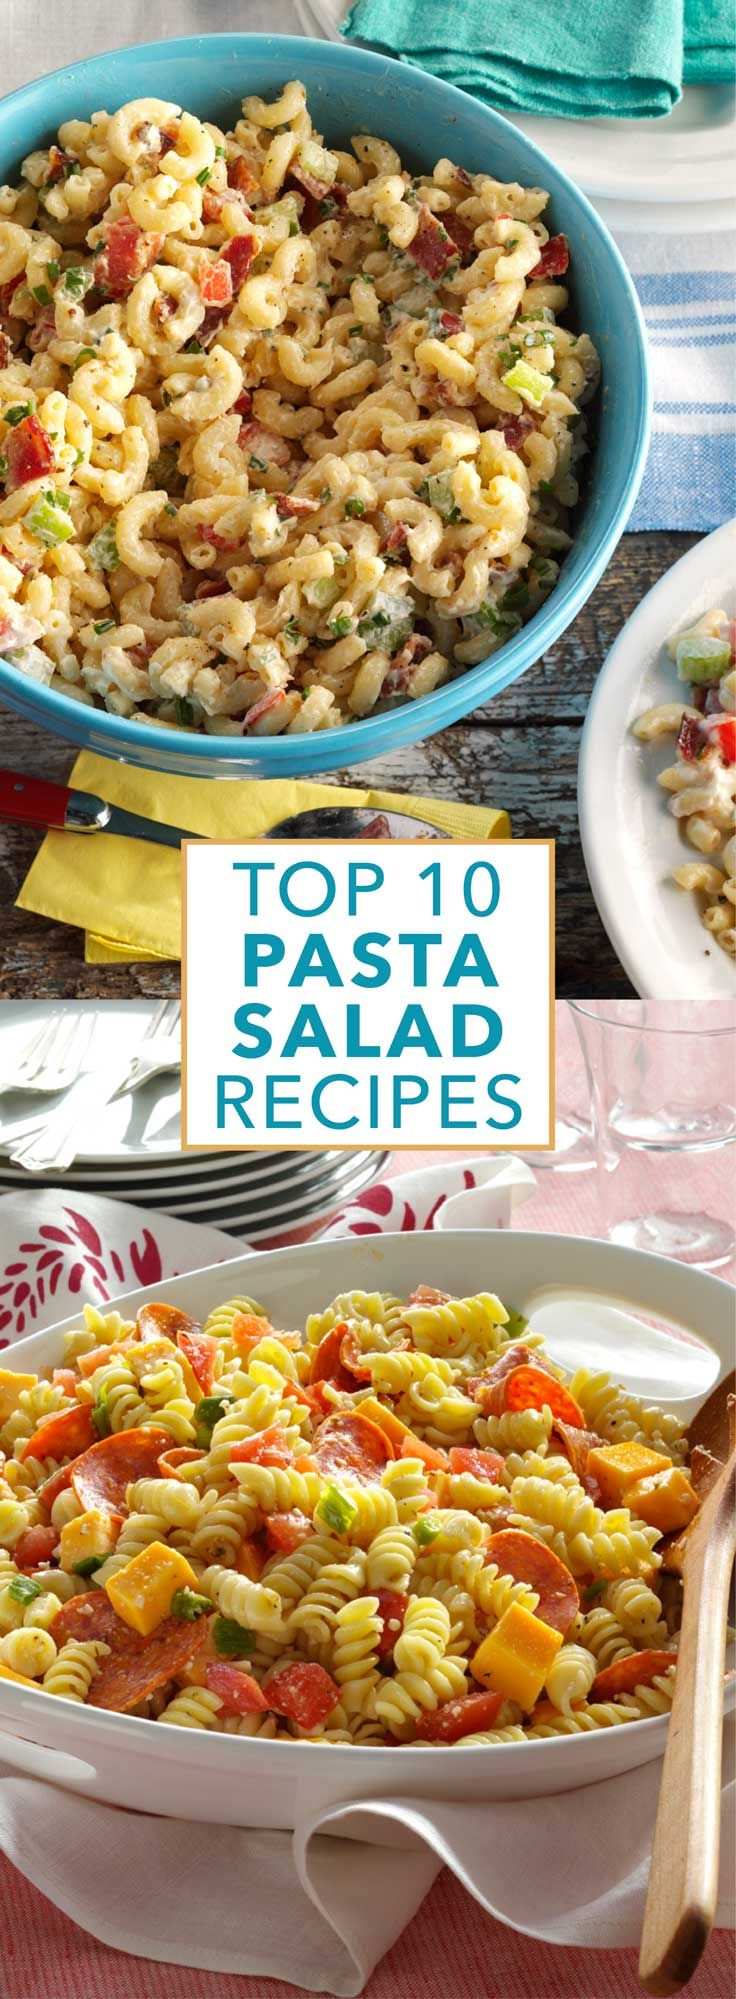 Top 10 Pasta Salad Recipes from Taste of Home |  Serve these top-rated pasta salad recipes at summer cookouts, potlucks and parties. Filled with bacon, veggies, chicken and more ingredients, guests will love these crowd-pleasing pasta salads.